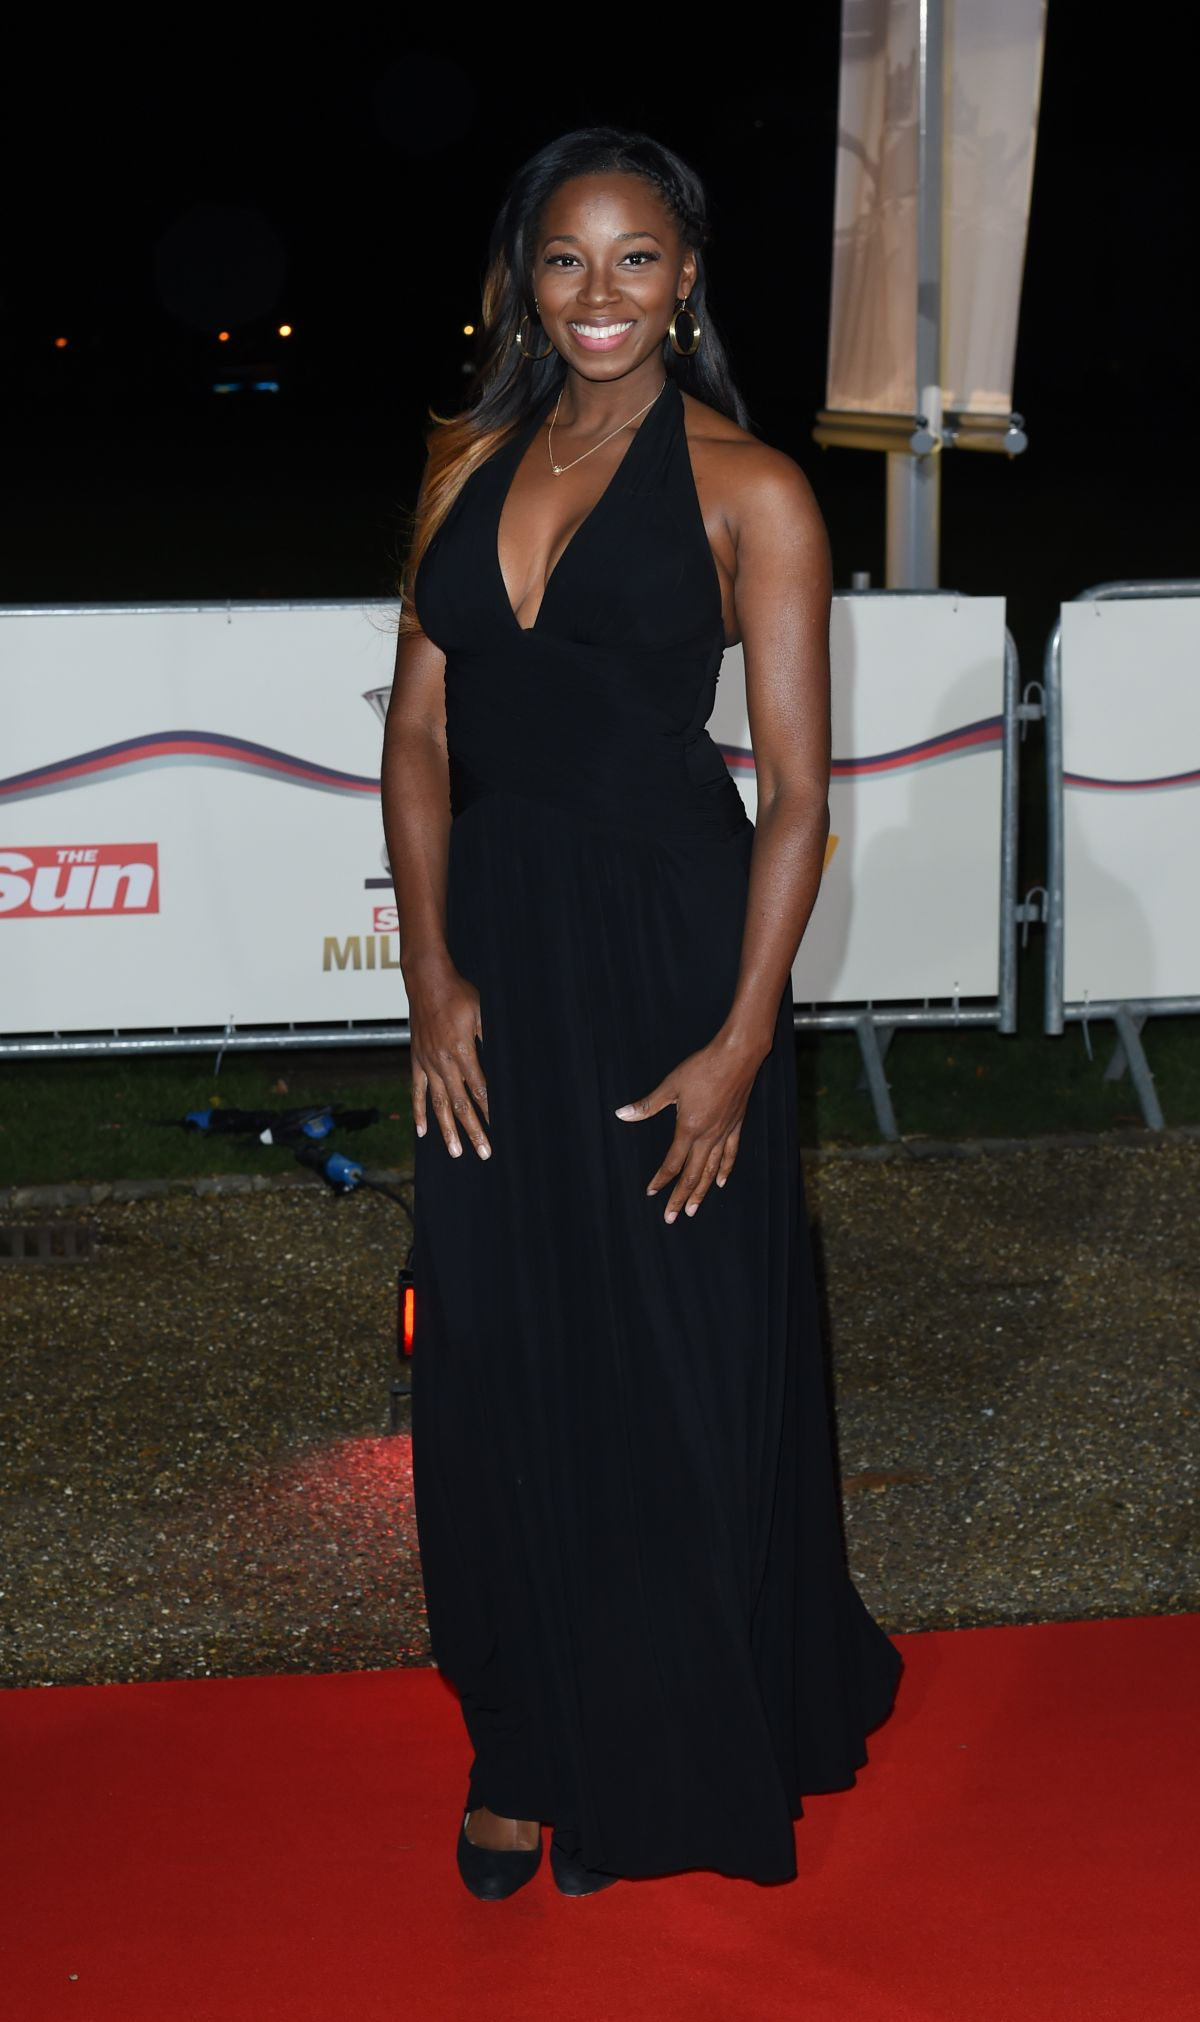 JAMELIA at A Night of Heroes: The Sun Military Awards in London